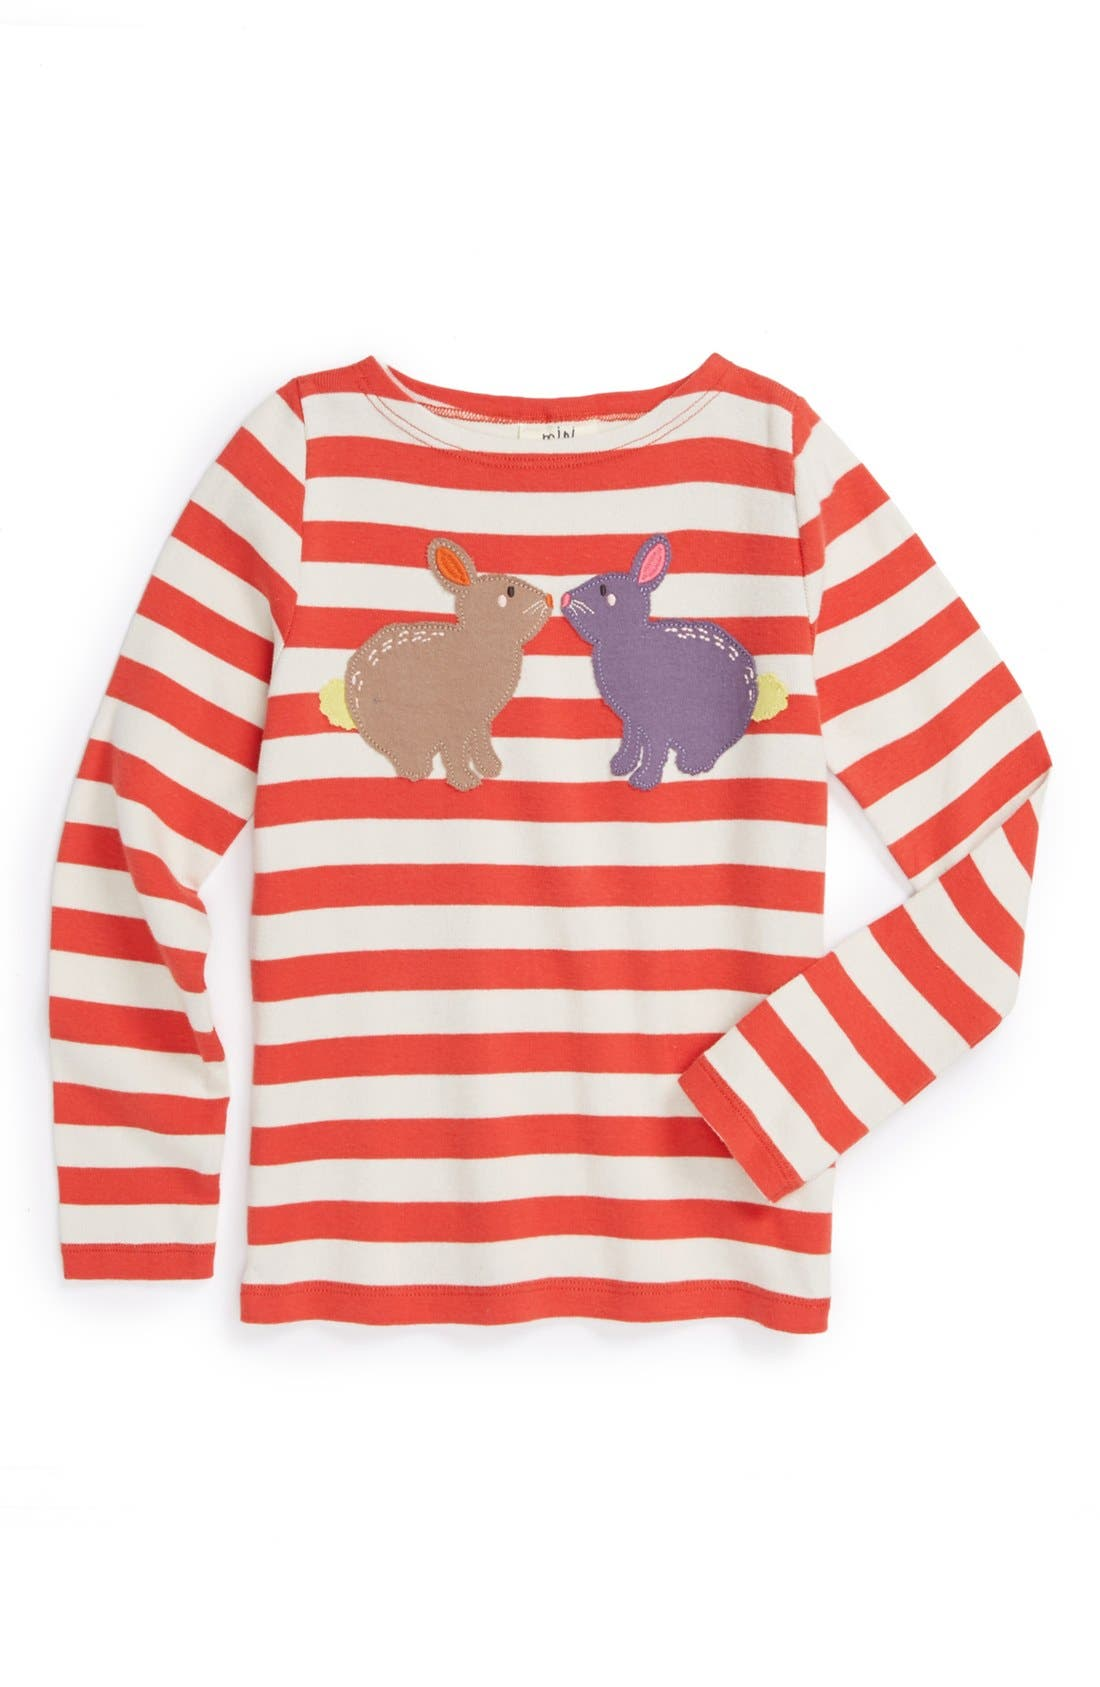 Alternate Image 1 Selected - Mini Boden 'Stripy Animal' Tee (Little Girls & Big Girls)